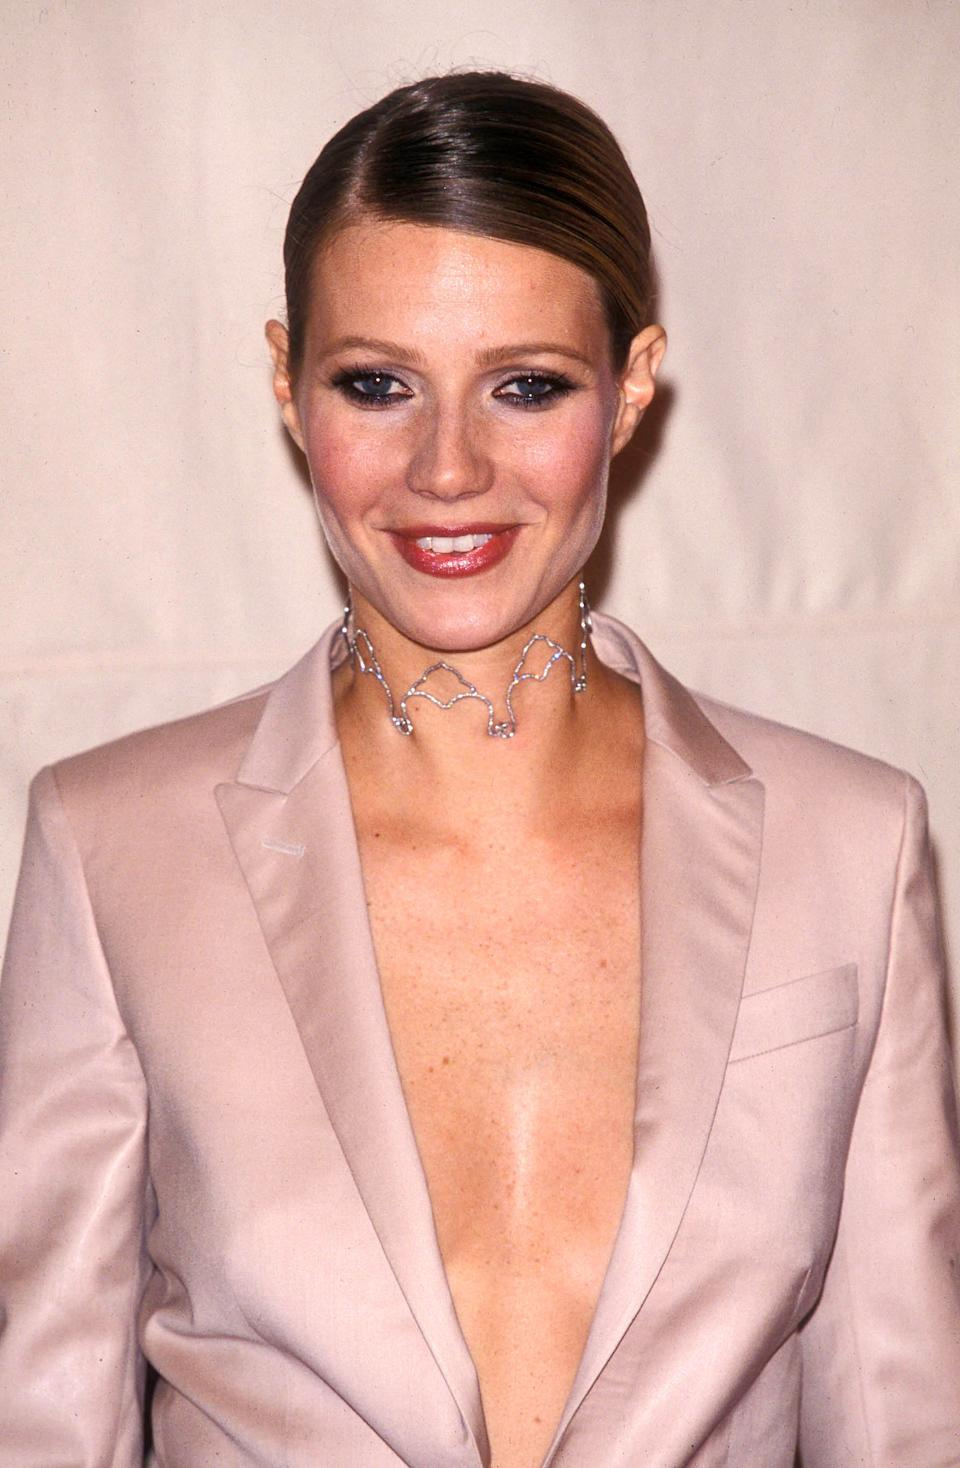 Photo by: Peter Kramer STAR MAX, Inc. - copyright 2001 ALL RIGHTS RESERVED Telephone/Fax: (212) 995-1196 10/18/01 Gwyneth Paltrow at the Vh1 Fashion Awards. (NYC) (Star Max via AP Images)